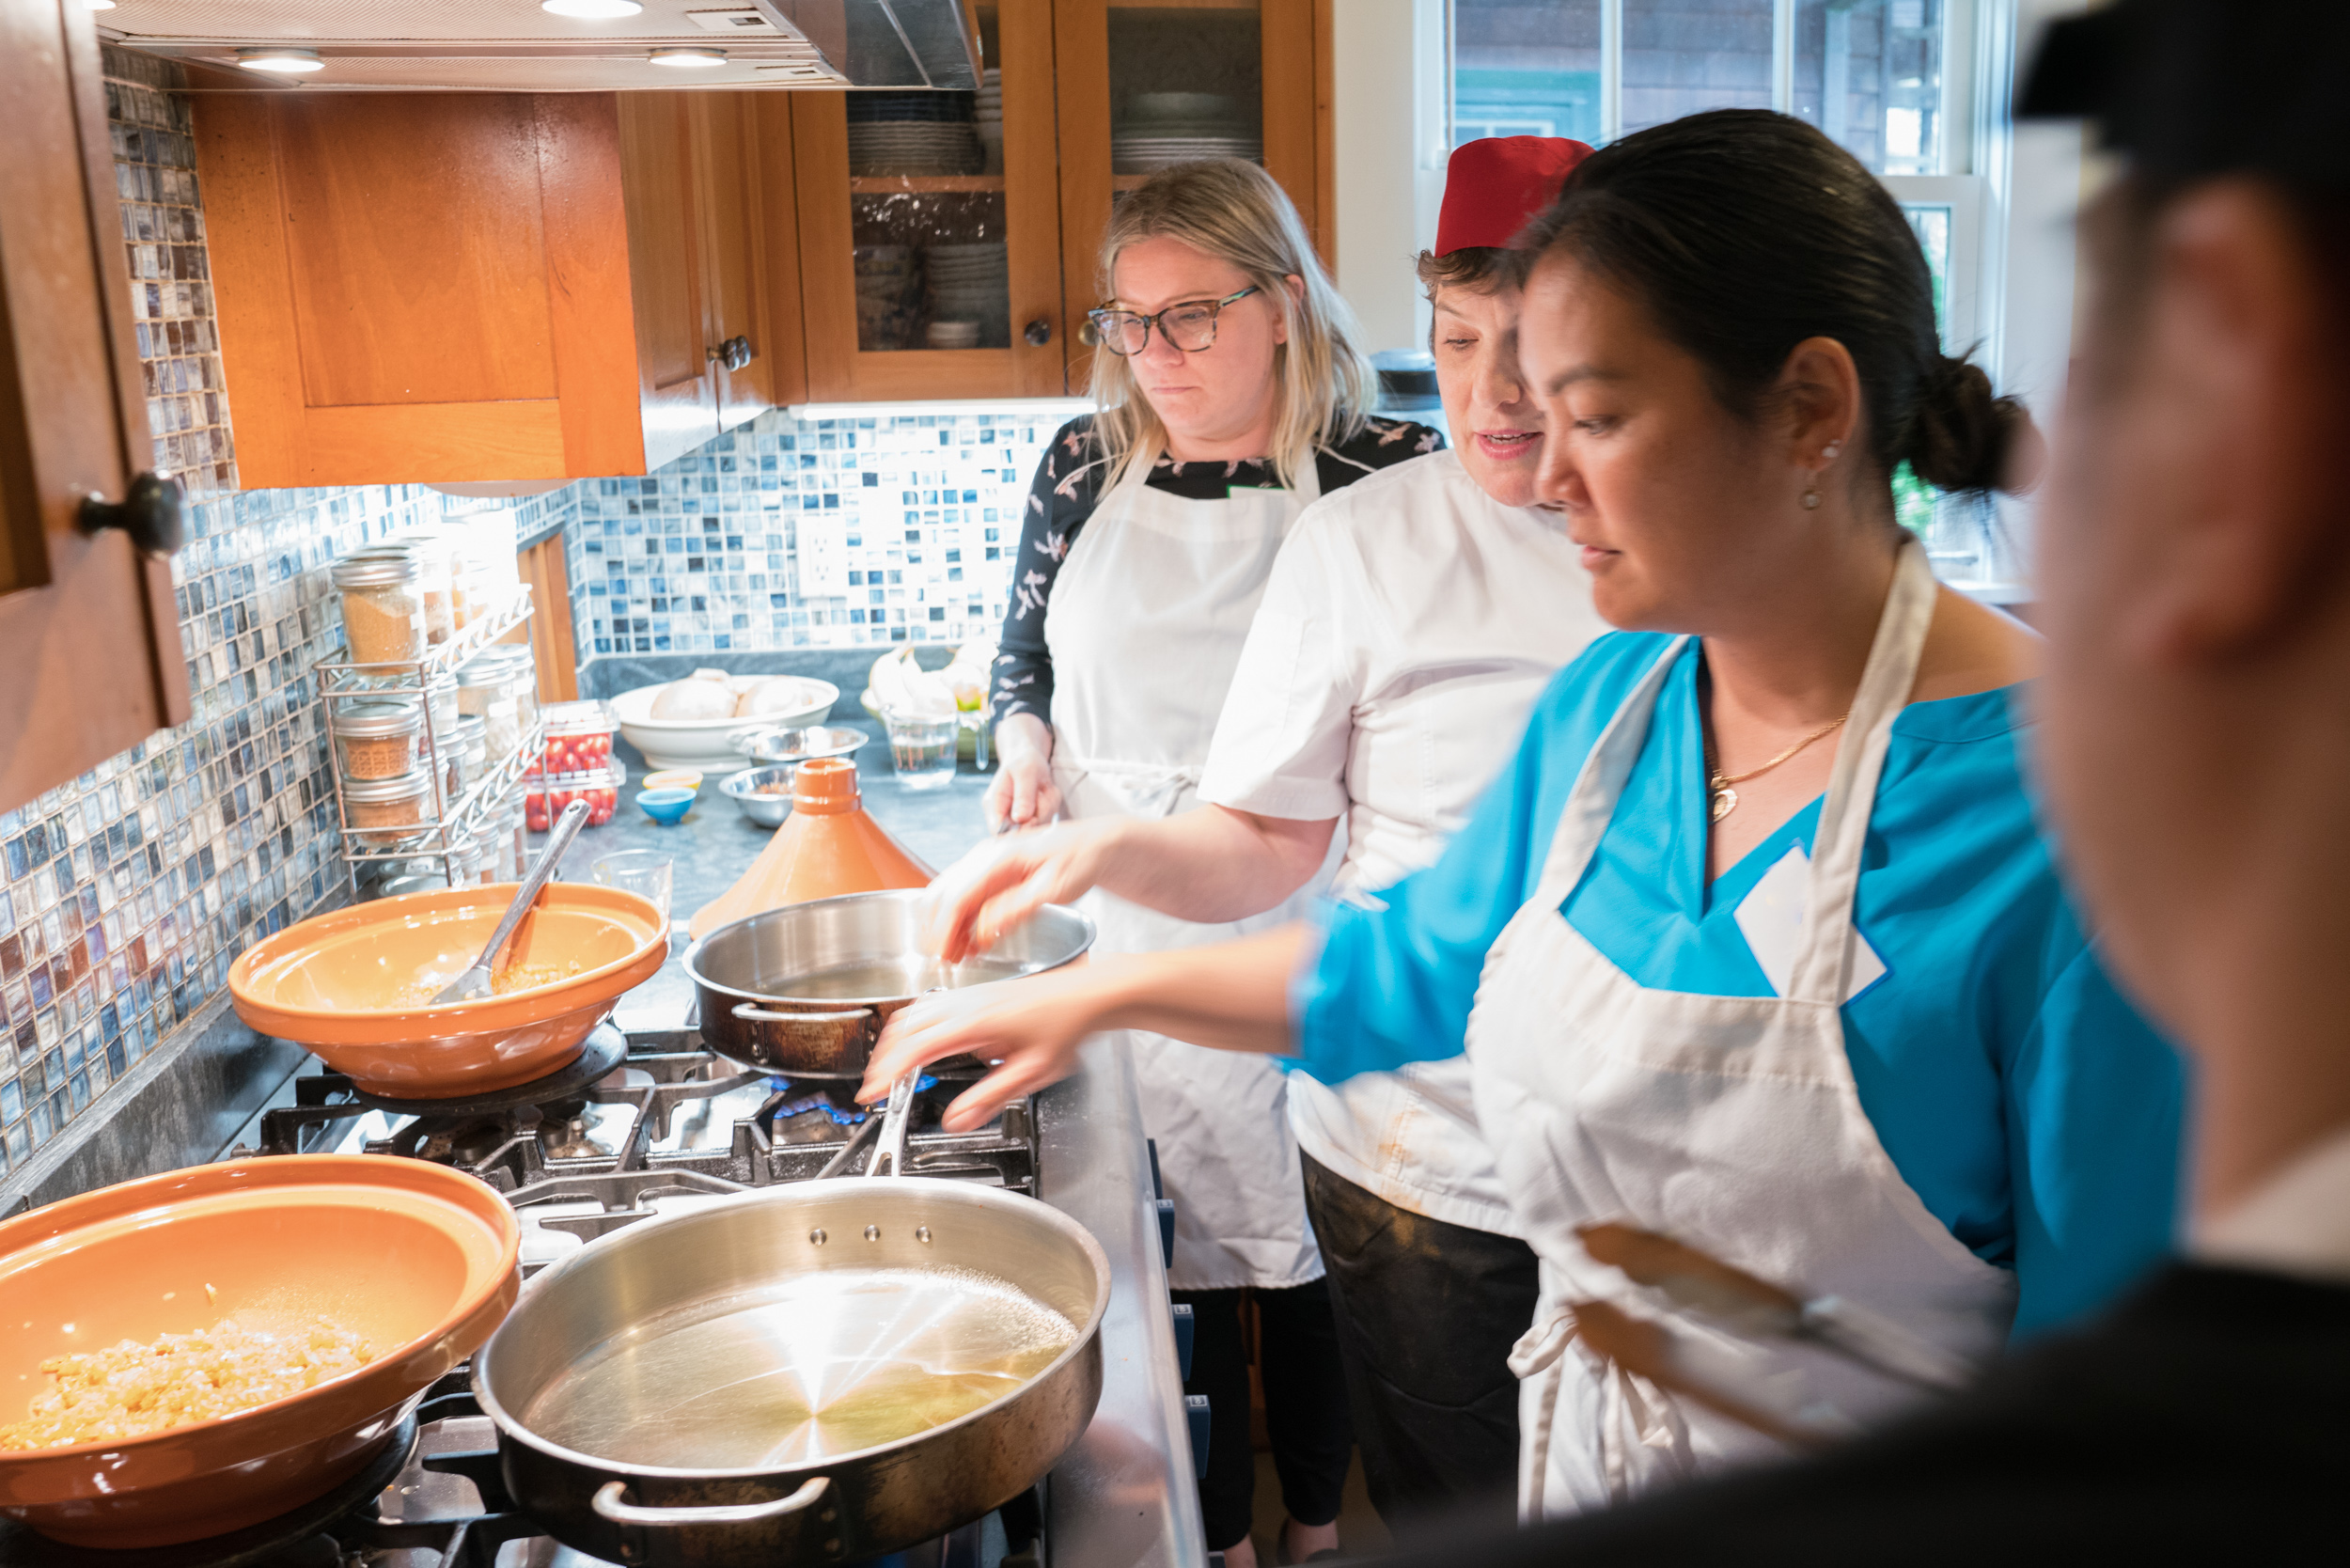 Cook-with-Chef-Traci-team-building-heating-oil-for-making-tagine.jpg